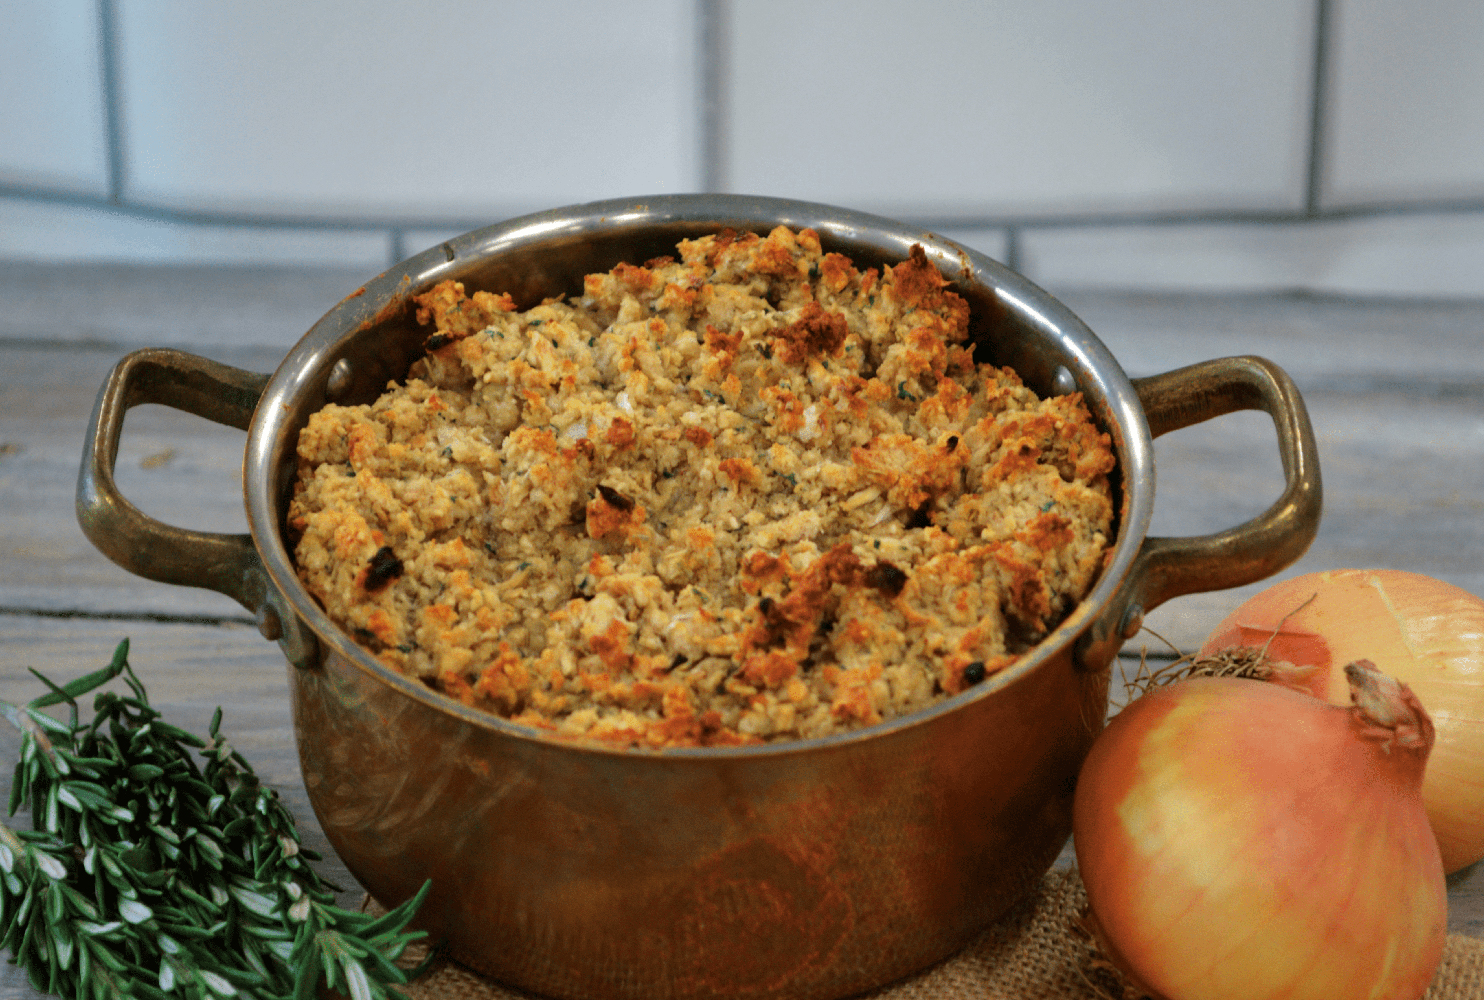 TYKE GLUTEN FREE SAGE & ONION STUFFING MIX